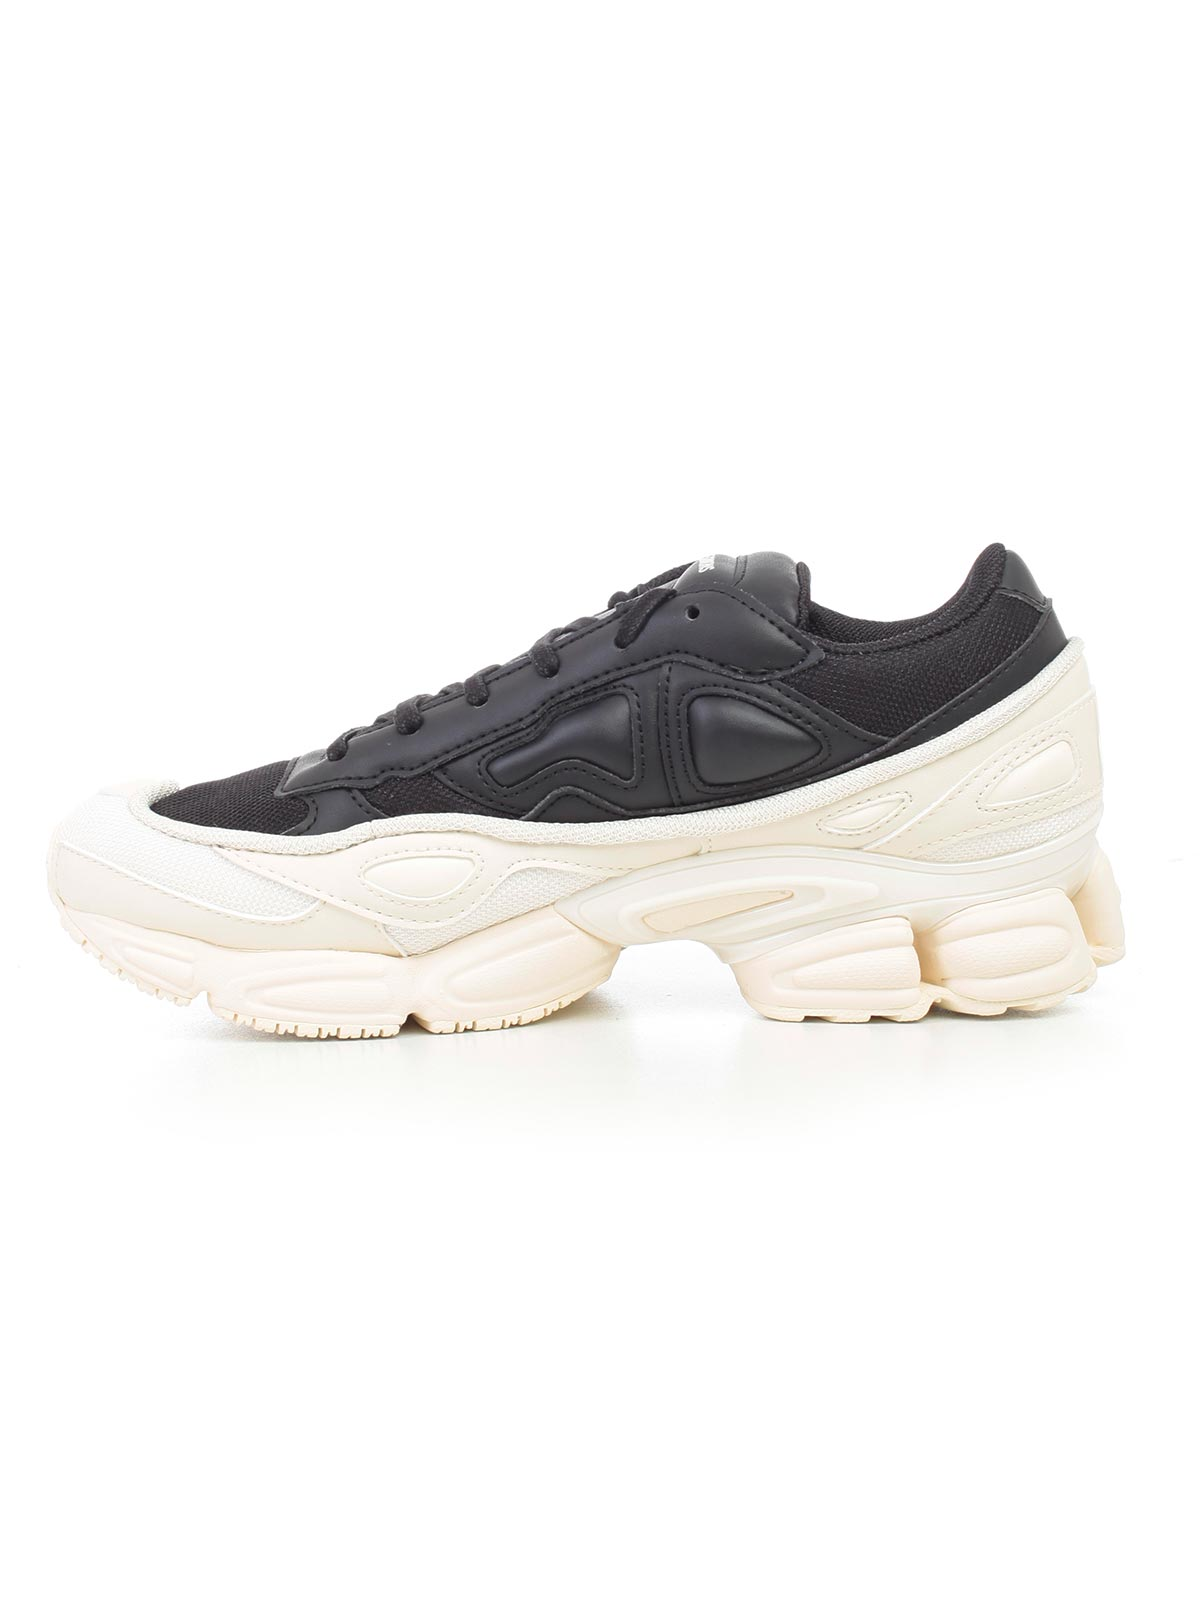 Picture of Adidas X Raf Simons Sneakers